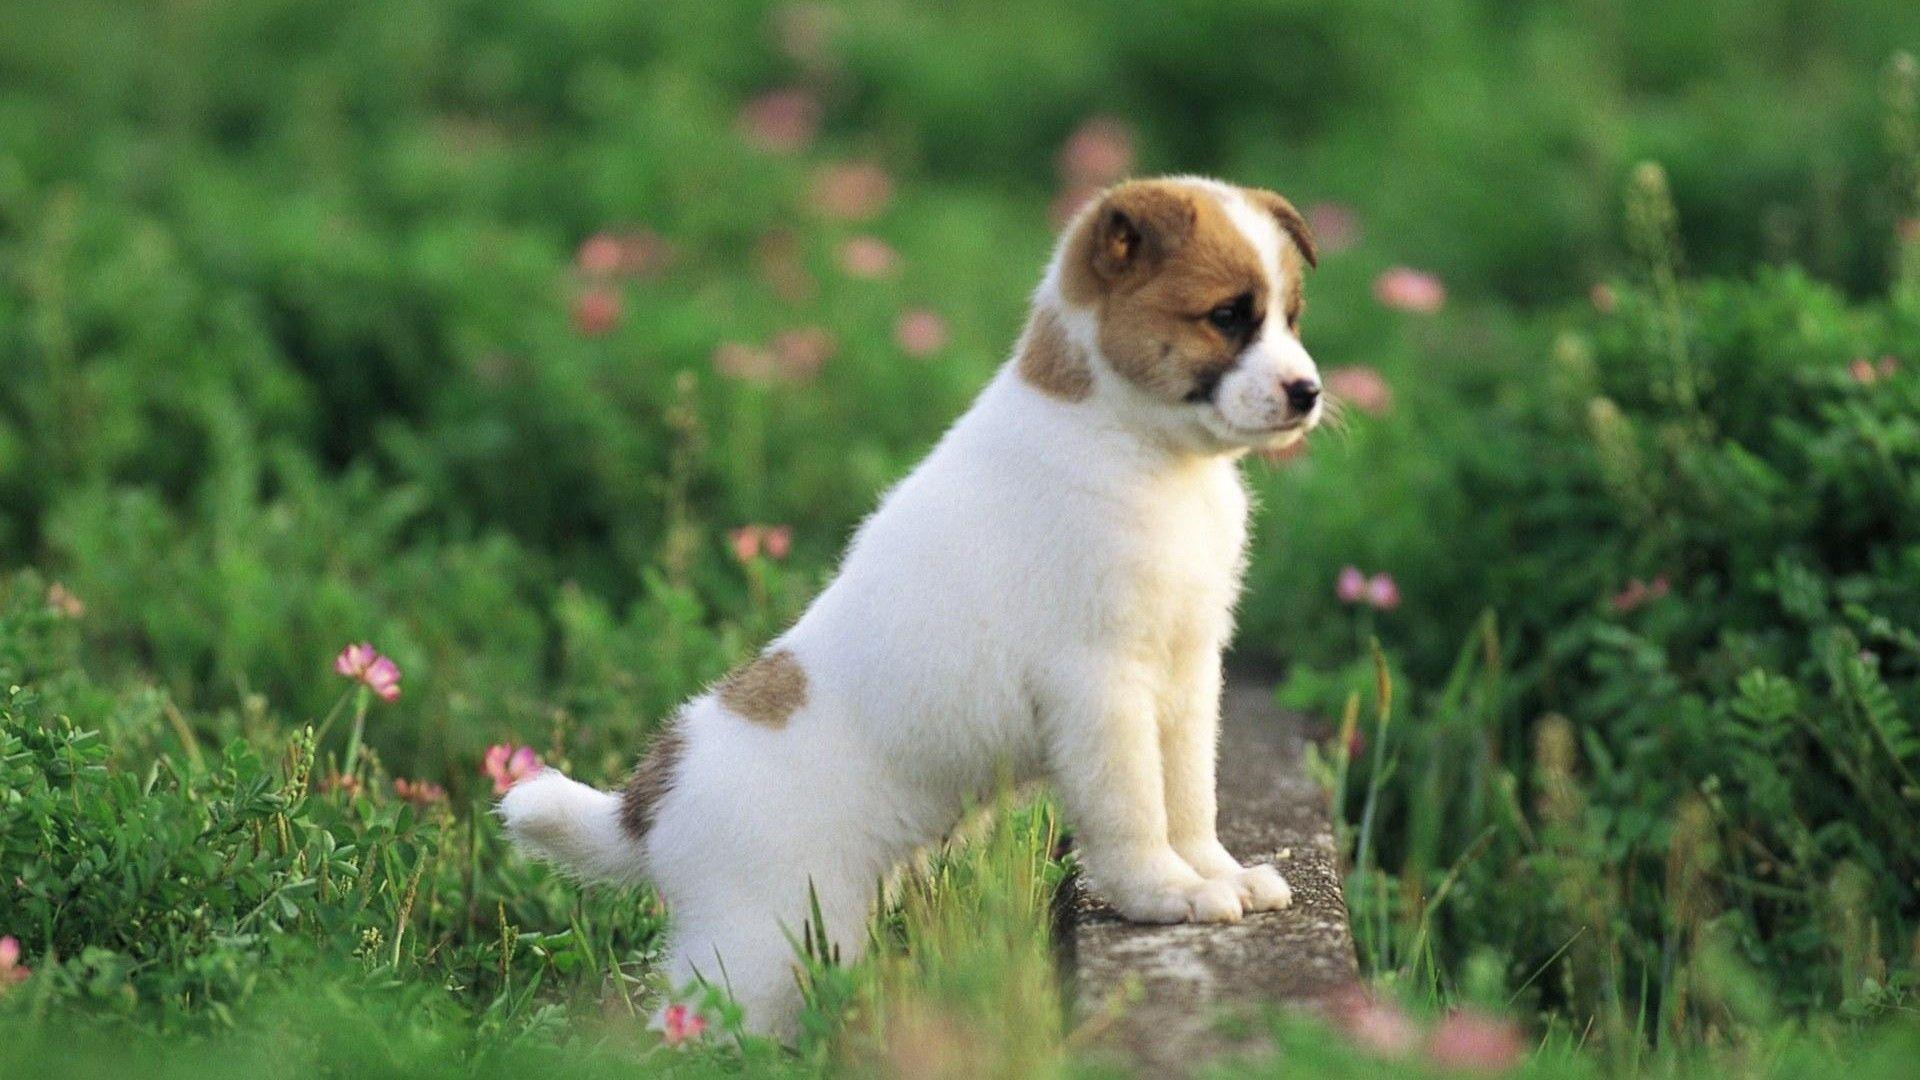 Cute Dog Hd Wallpapers 1920x1200PX ~ Awesome Beautiful Dog Wallpapers #